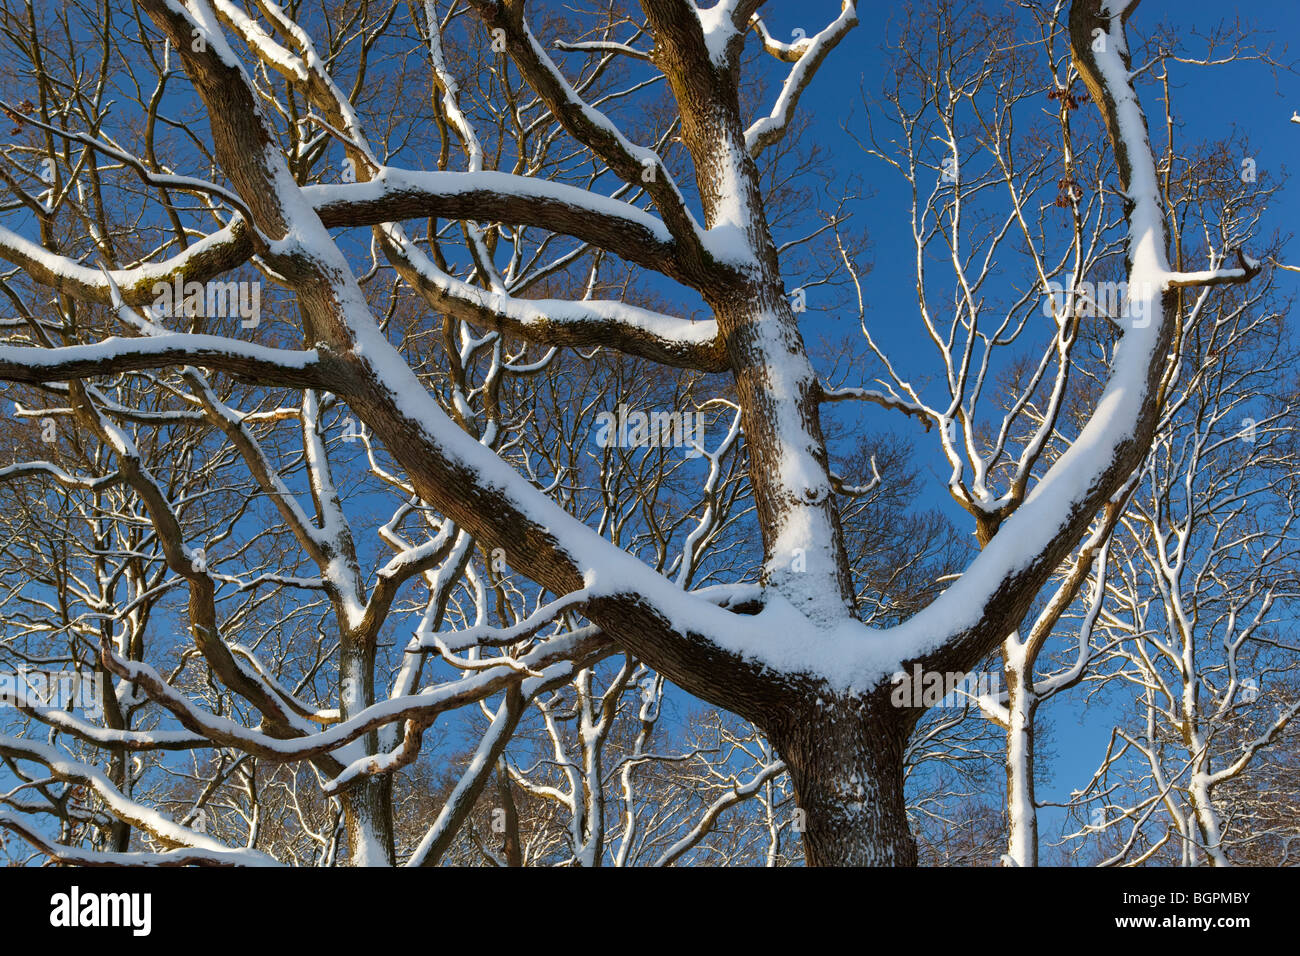 snow covered trees against blue sky - Stock Image